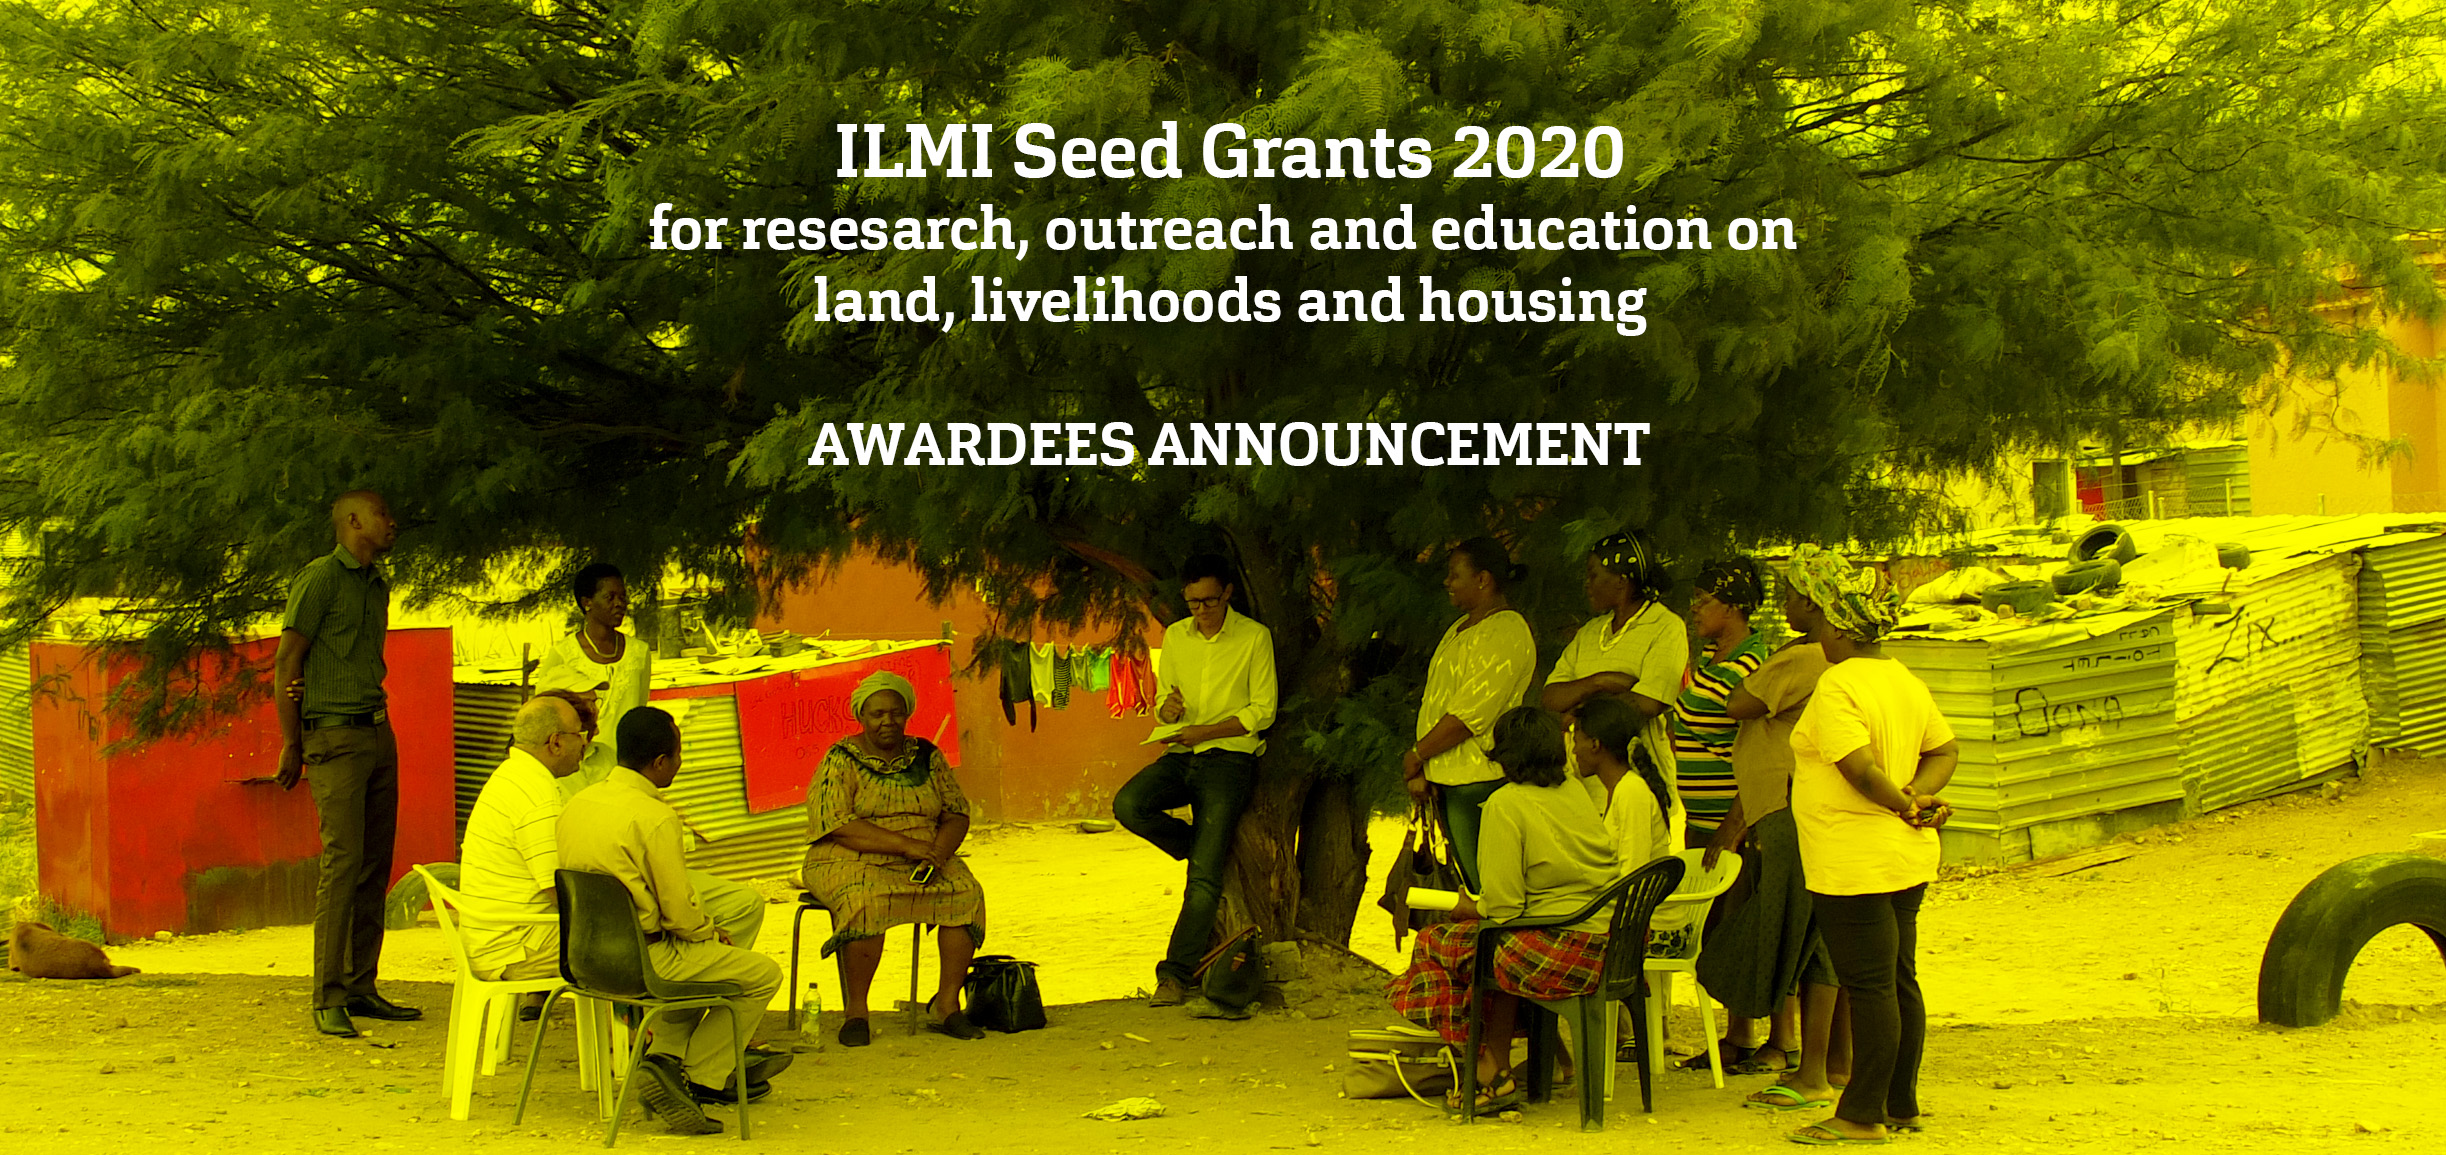 ILMI Seed Grants 2020 AWARDEES